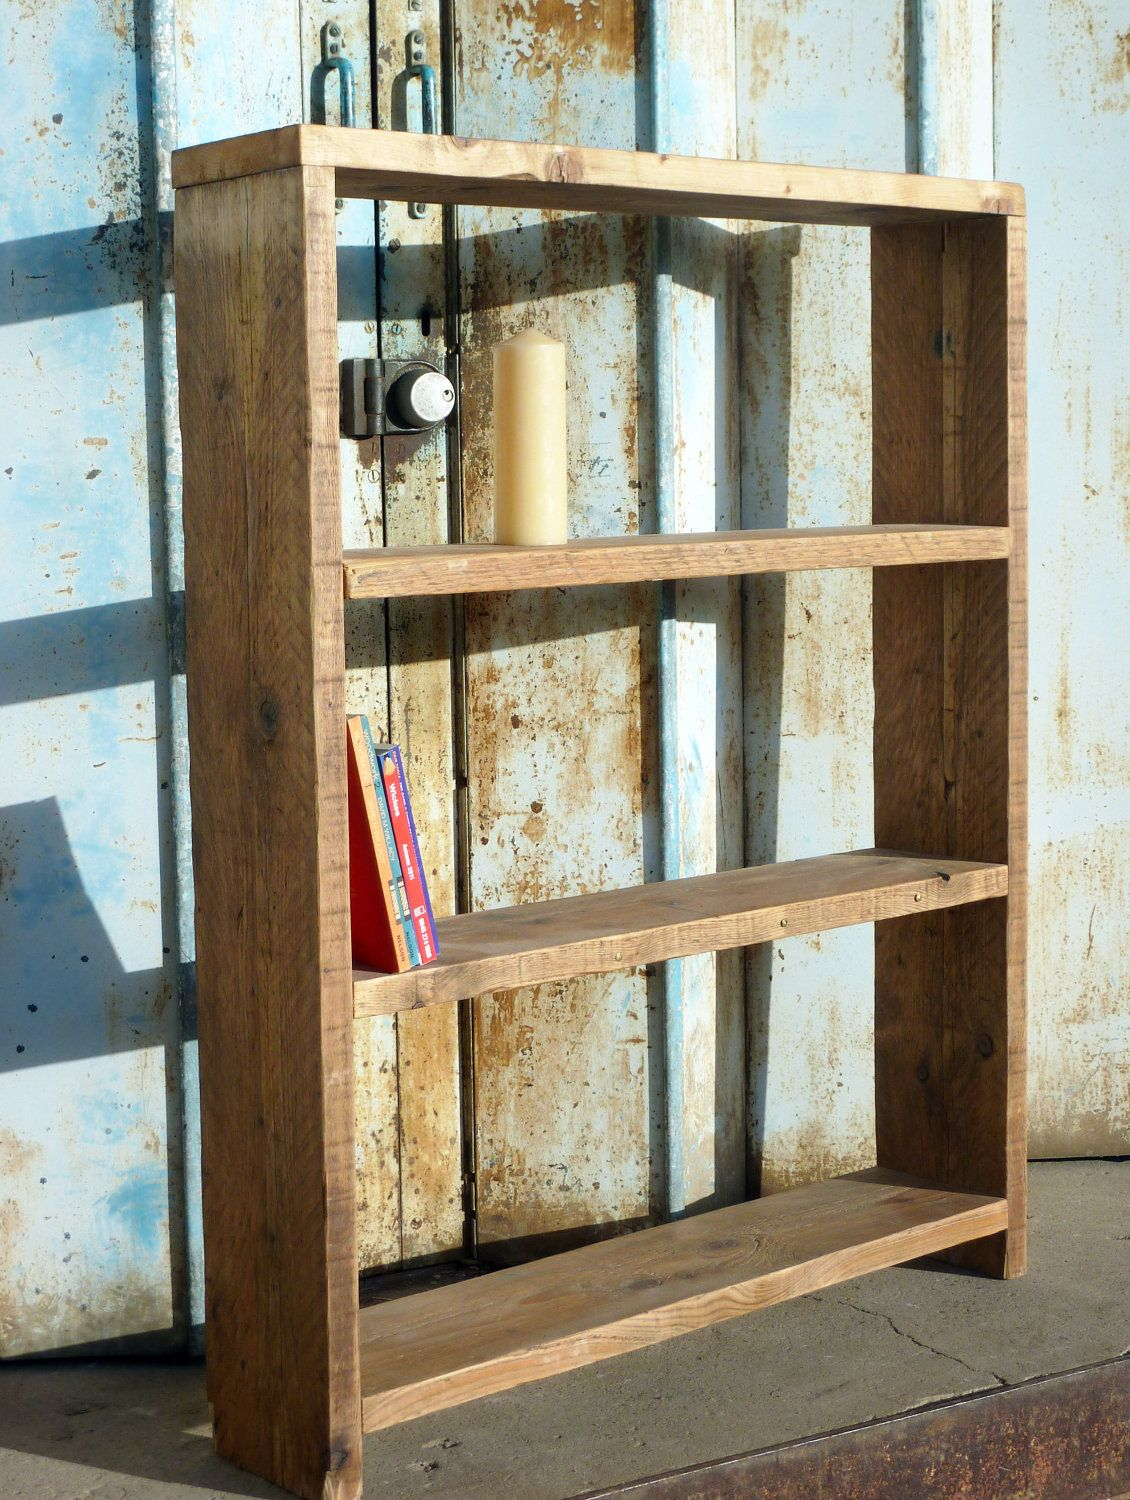 Reclaimed Scaffold Board Shelving Book Case Une Maison